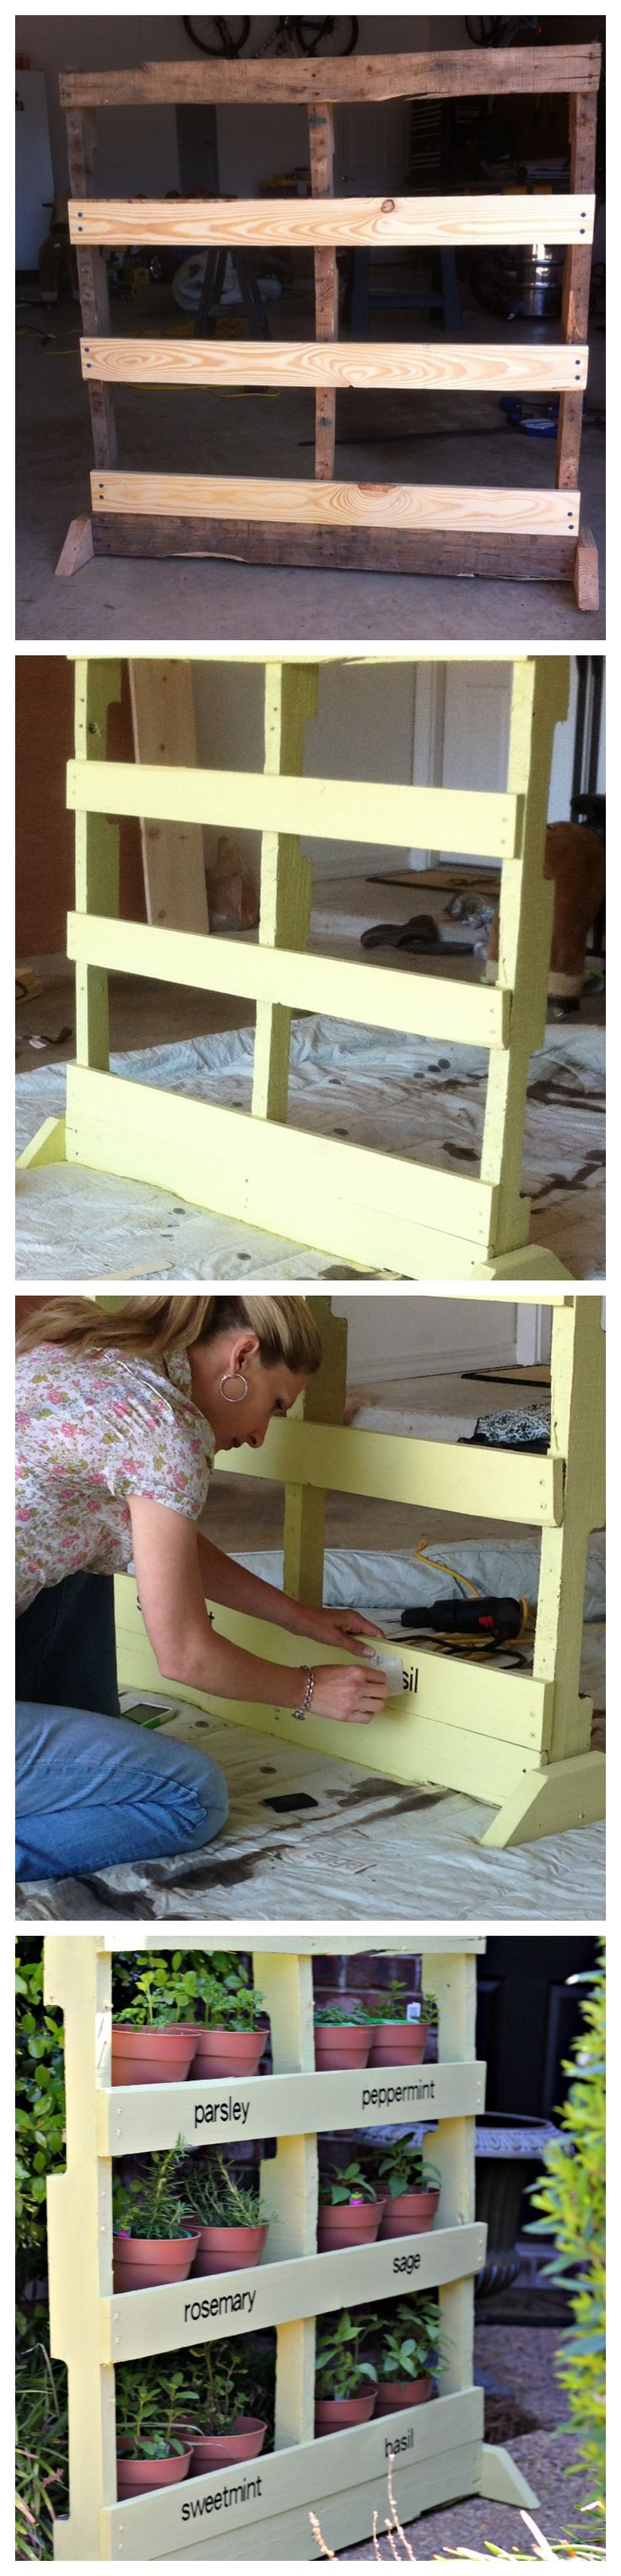 Full tutorial on how to take an old #pallet and remodel it with shelves to turn into a #diy #HerbGarden www.pinkwhen.com